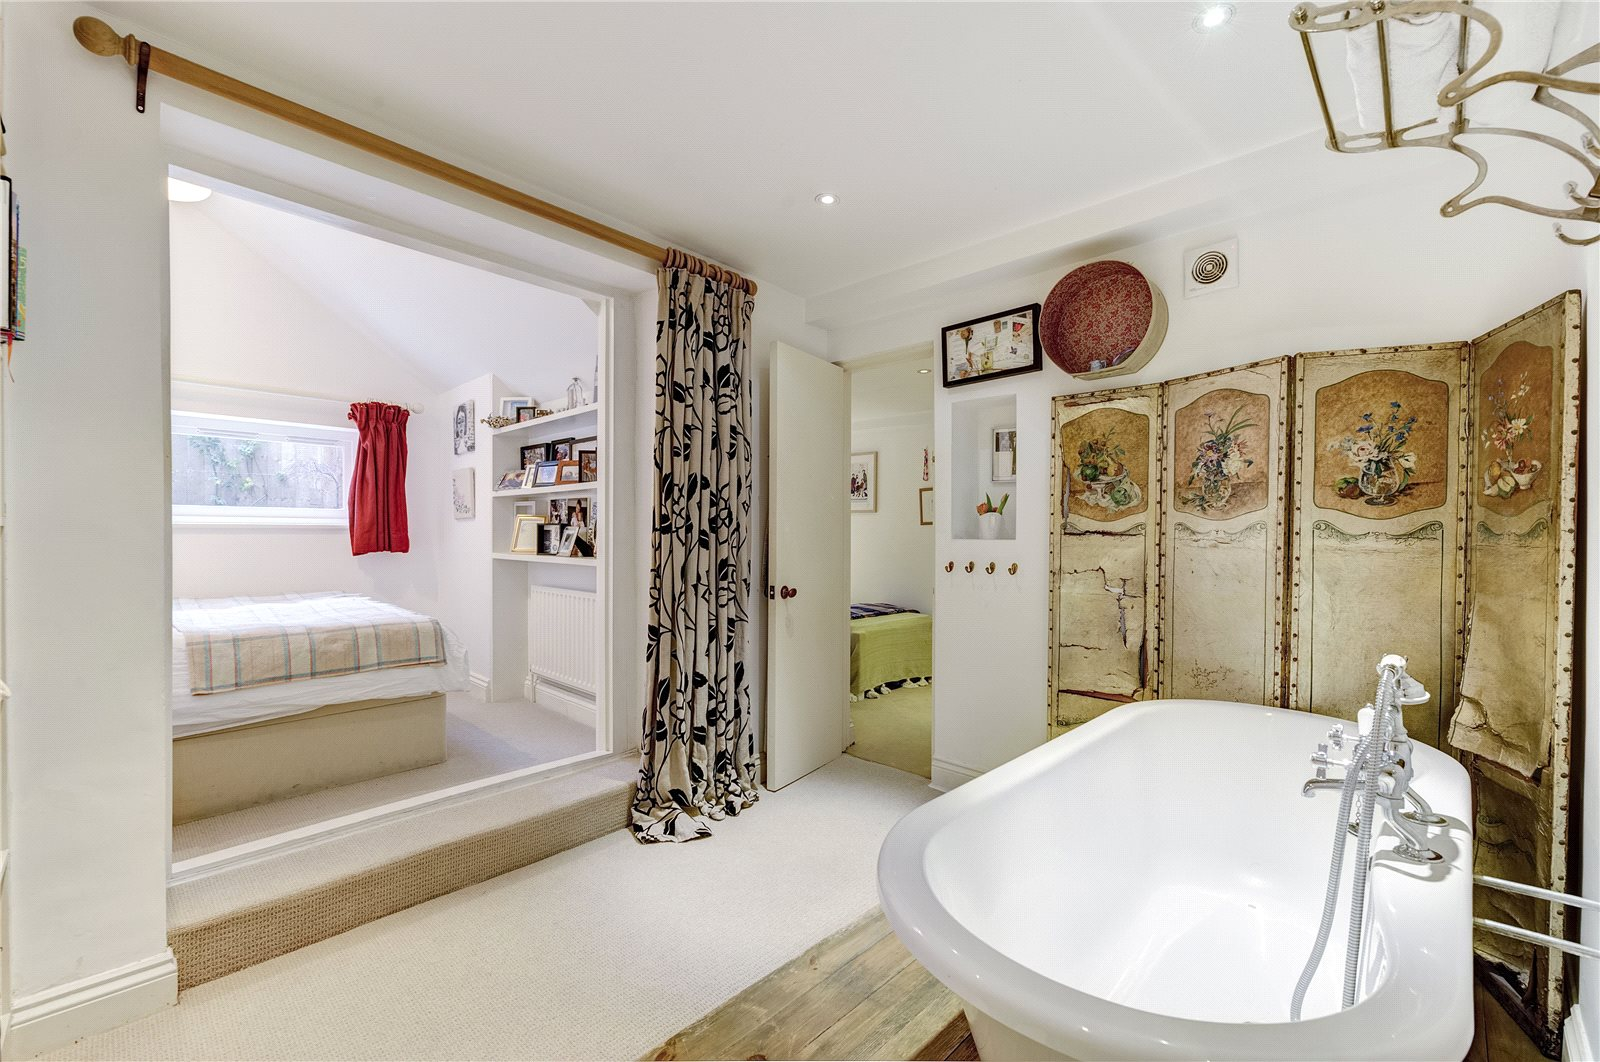 Additional photo for property listing at Powis Gardens, London, W11 London, England